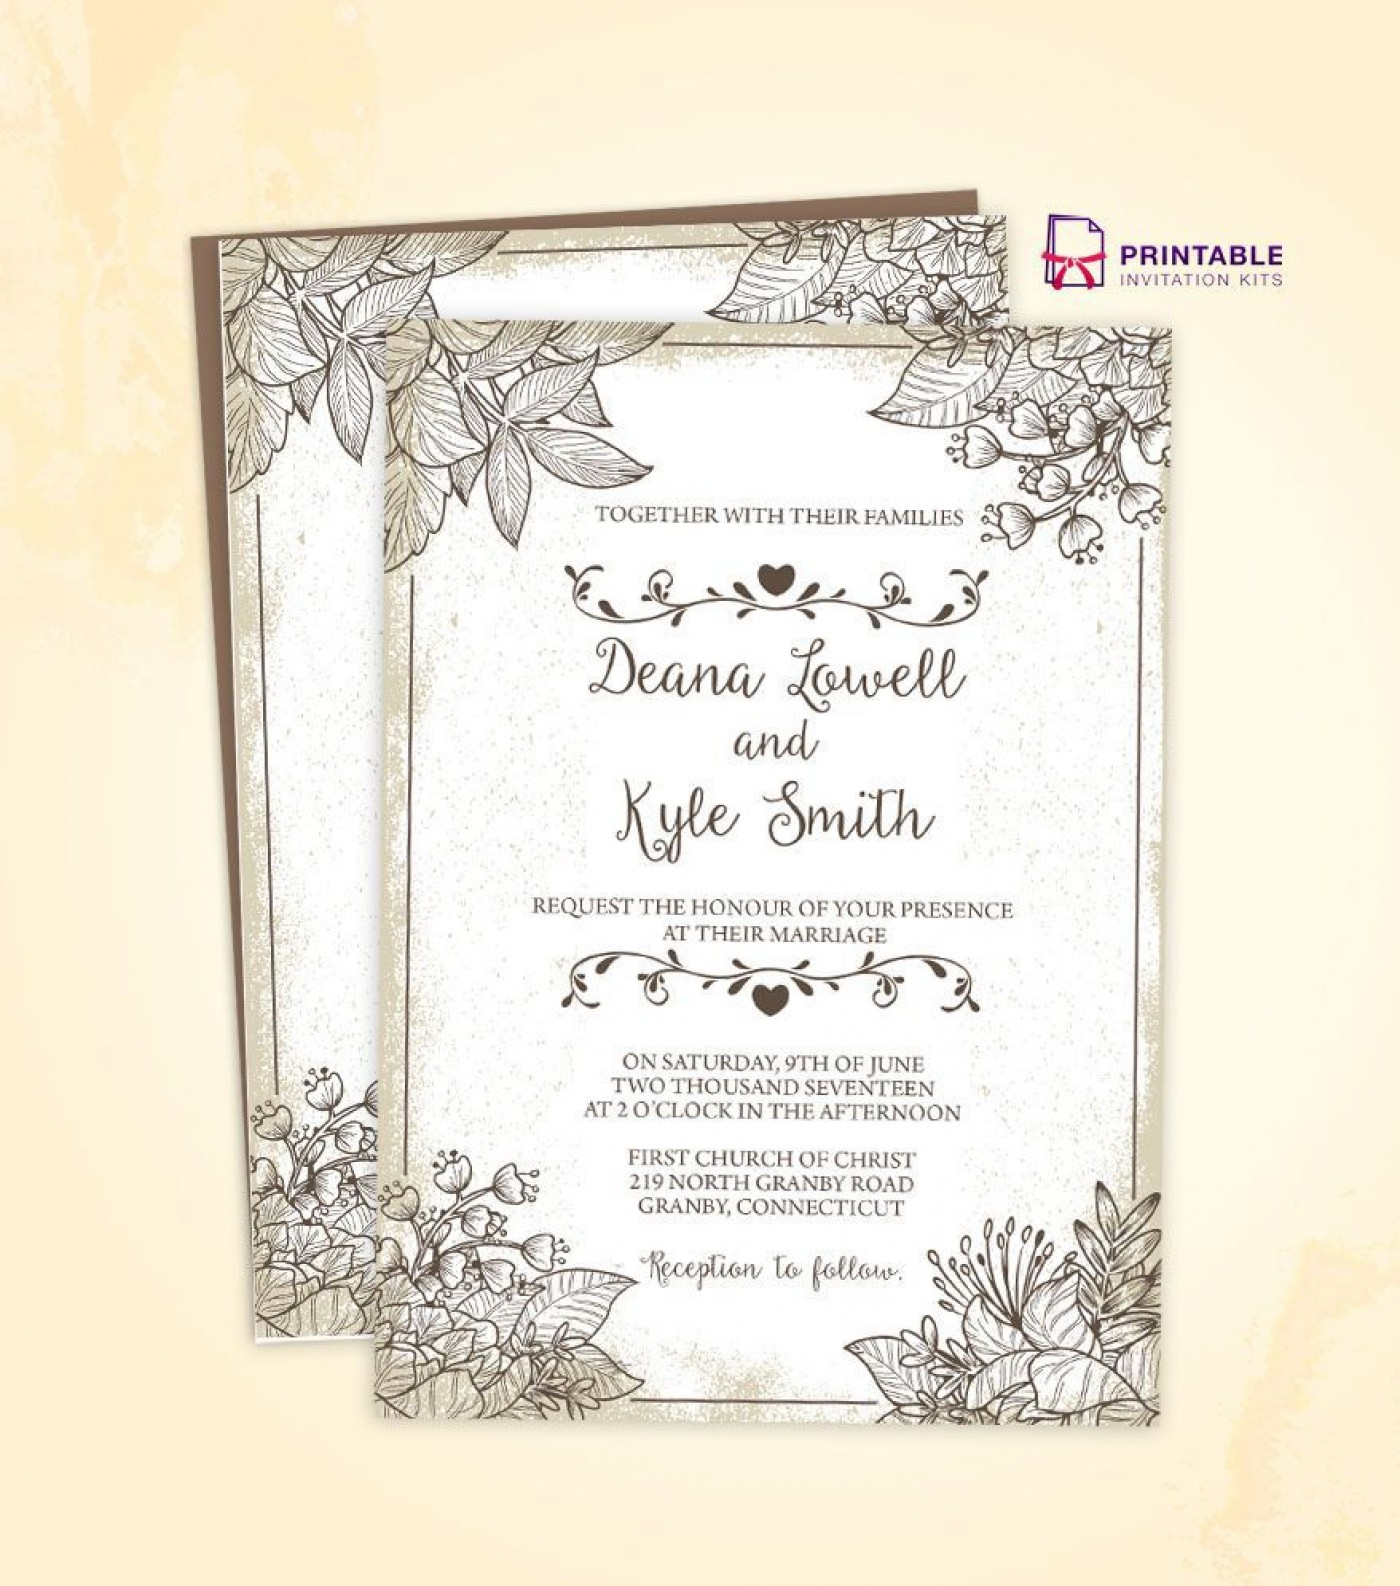 000 Wonderful Free Wedding Invitation Template Download Example  Psd Card Indian1400